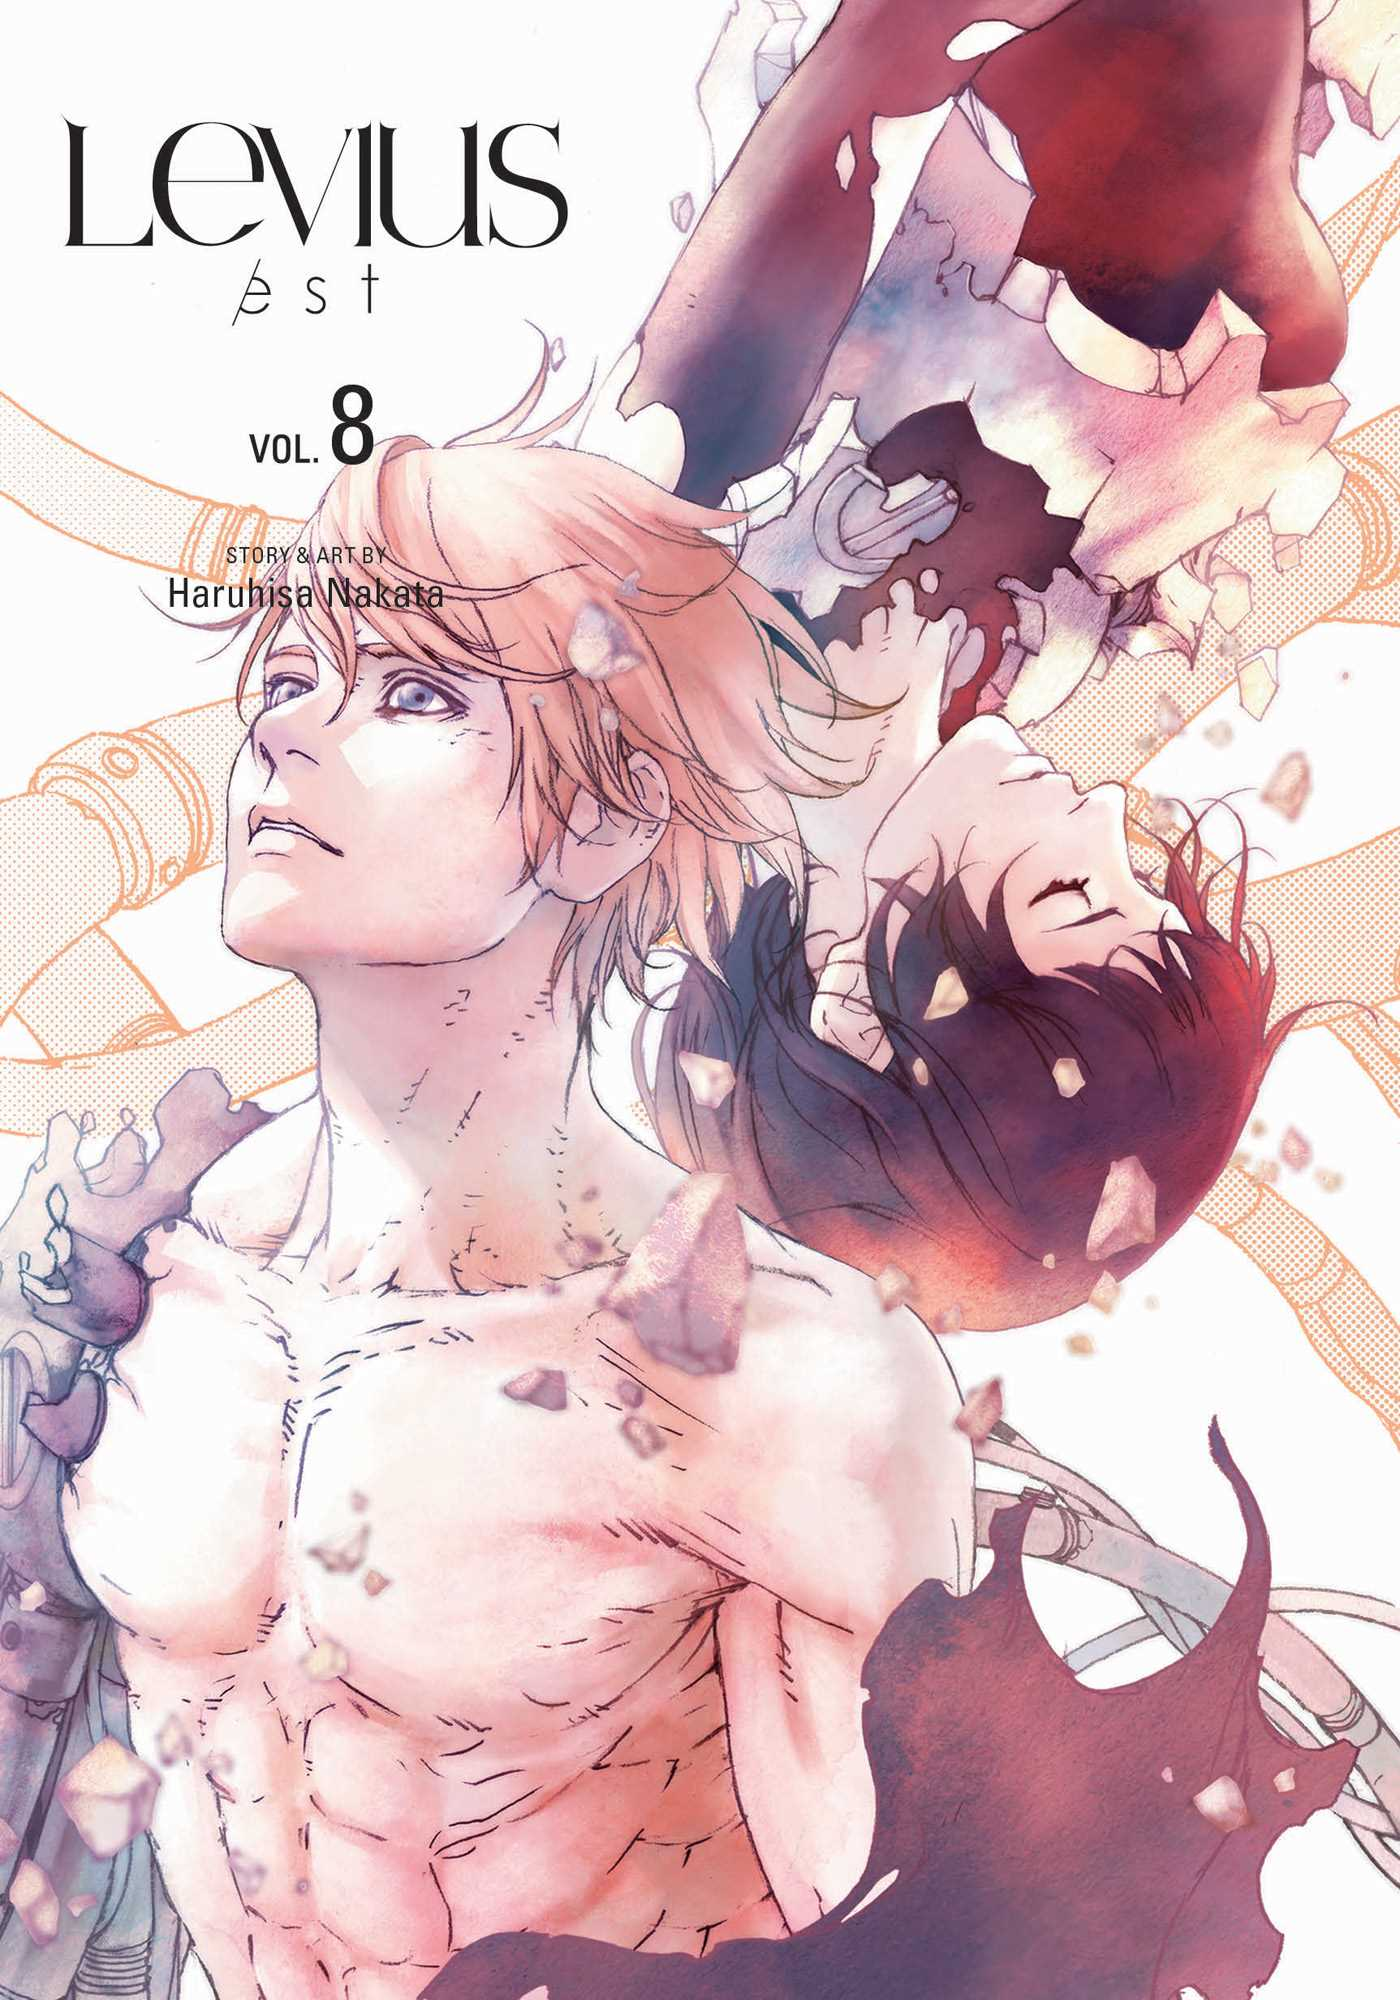 Levius/est, Vol. 8   Book by Haruhisa Nakata   Official Publisher Page   Simon & Schuster